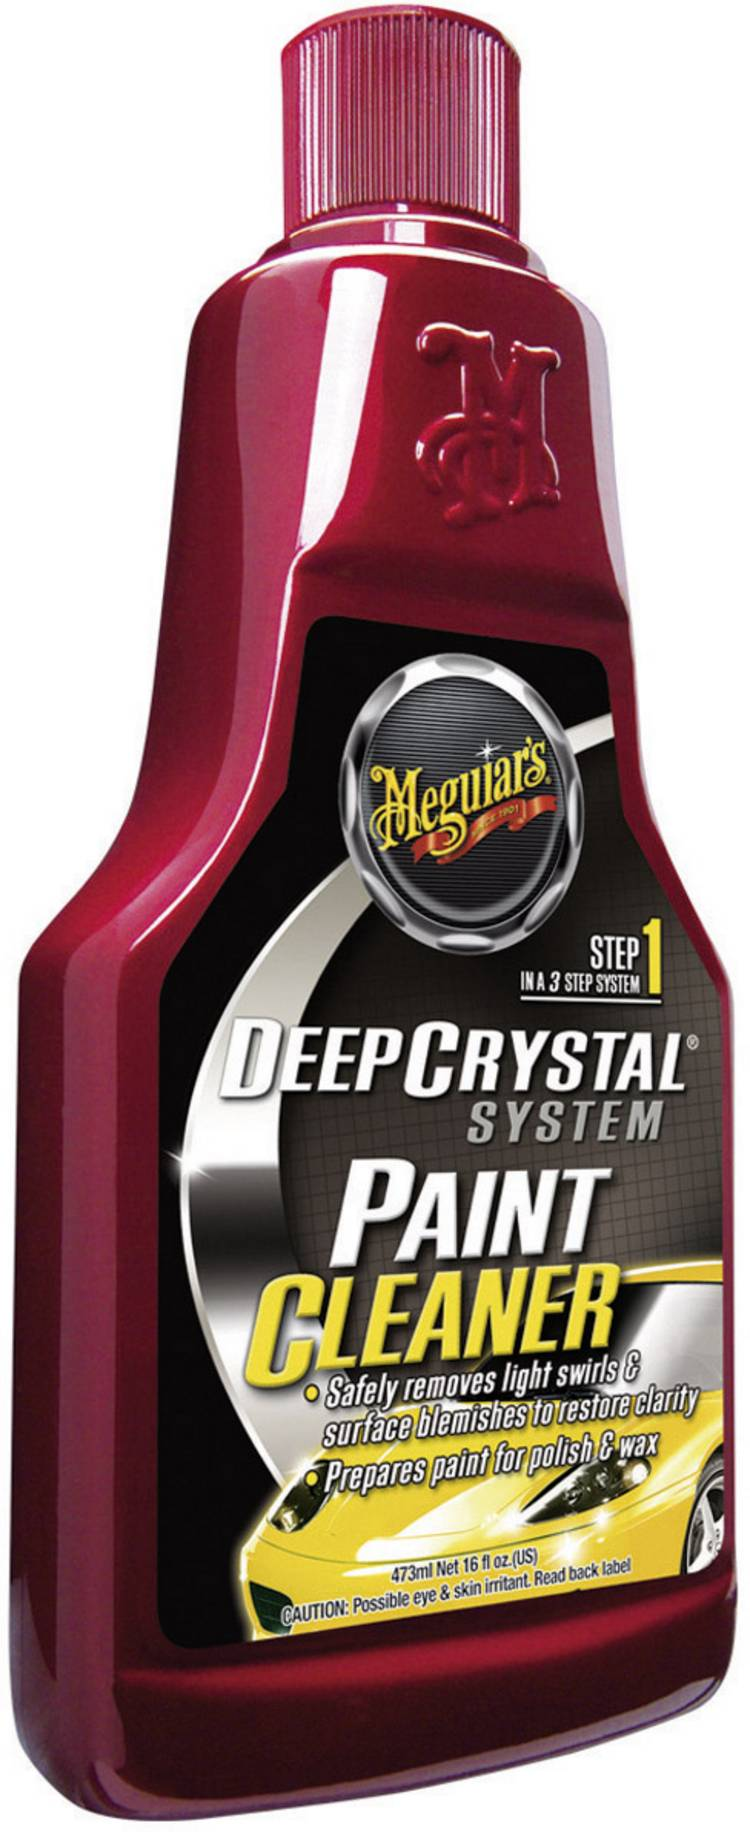 Image of Deep Crystal systeem Paint Cleaner-lakreiniger 473 ml Meguiars Deep Crystal System Paint Cleaner A3016